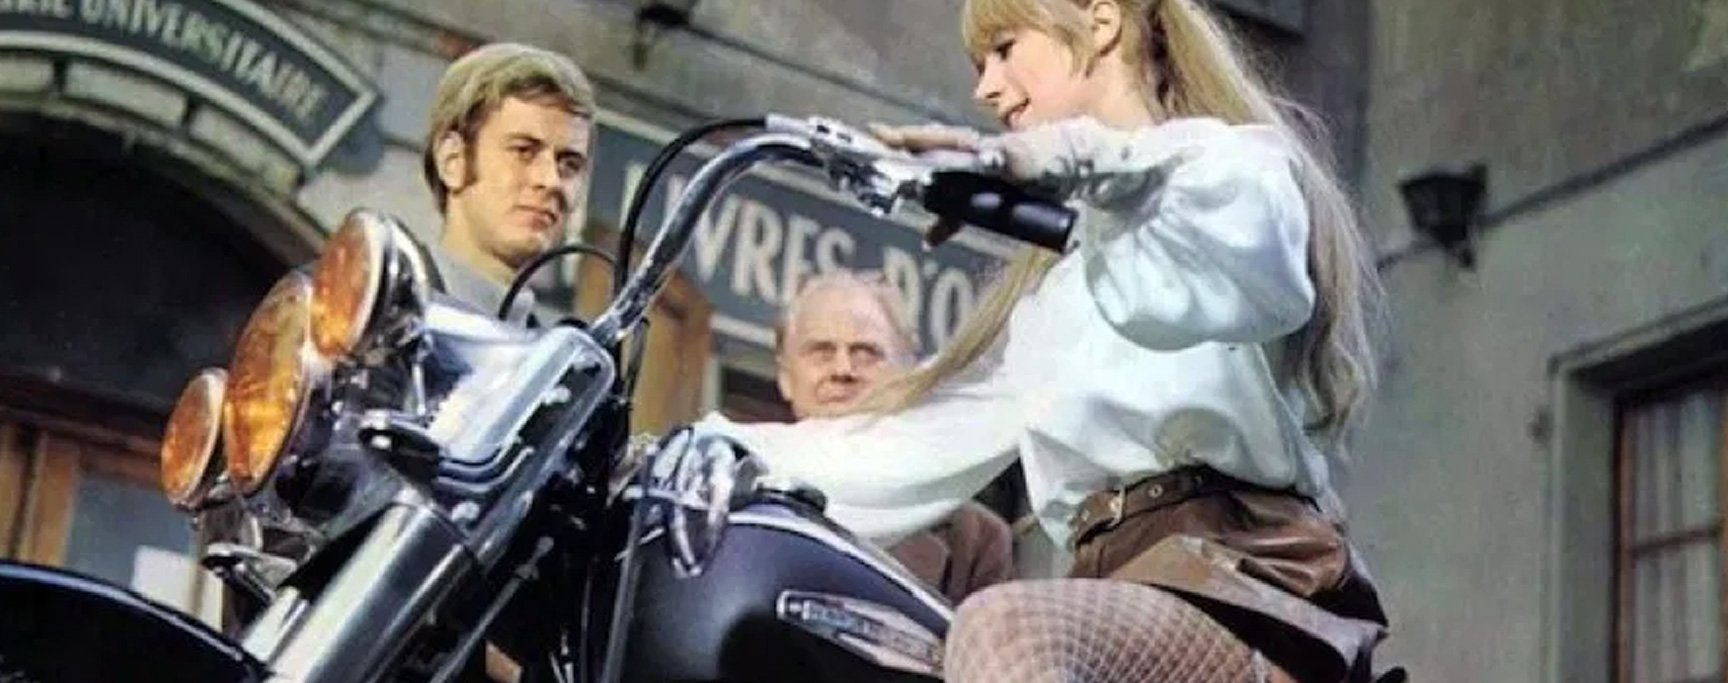 The Girl with the Motorcycle Film